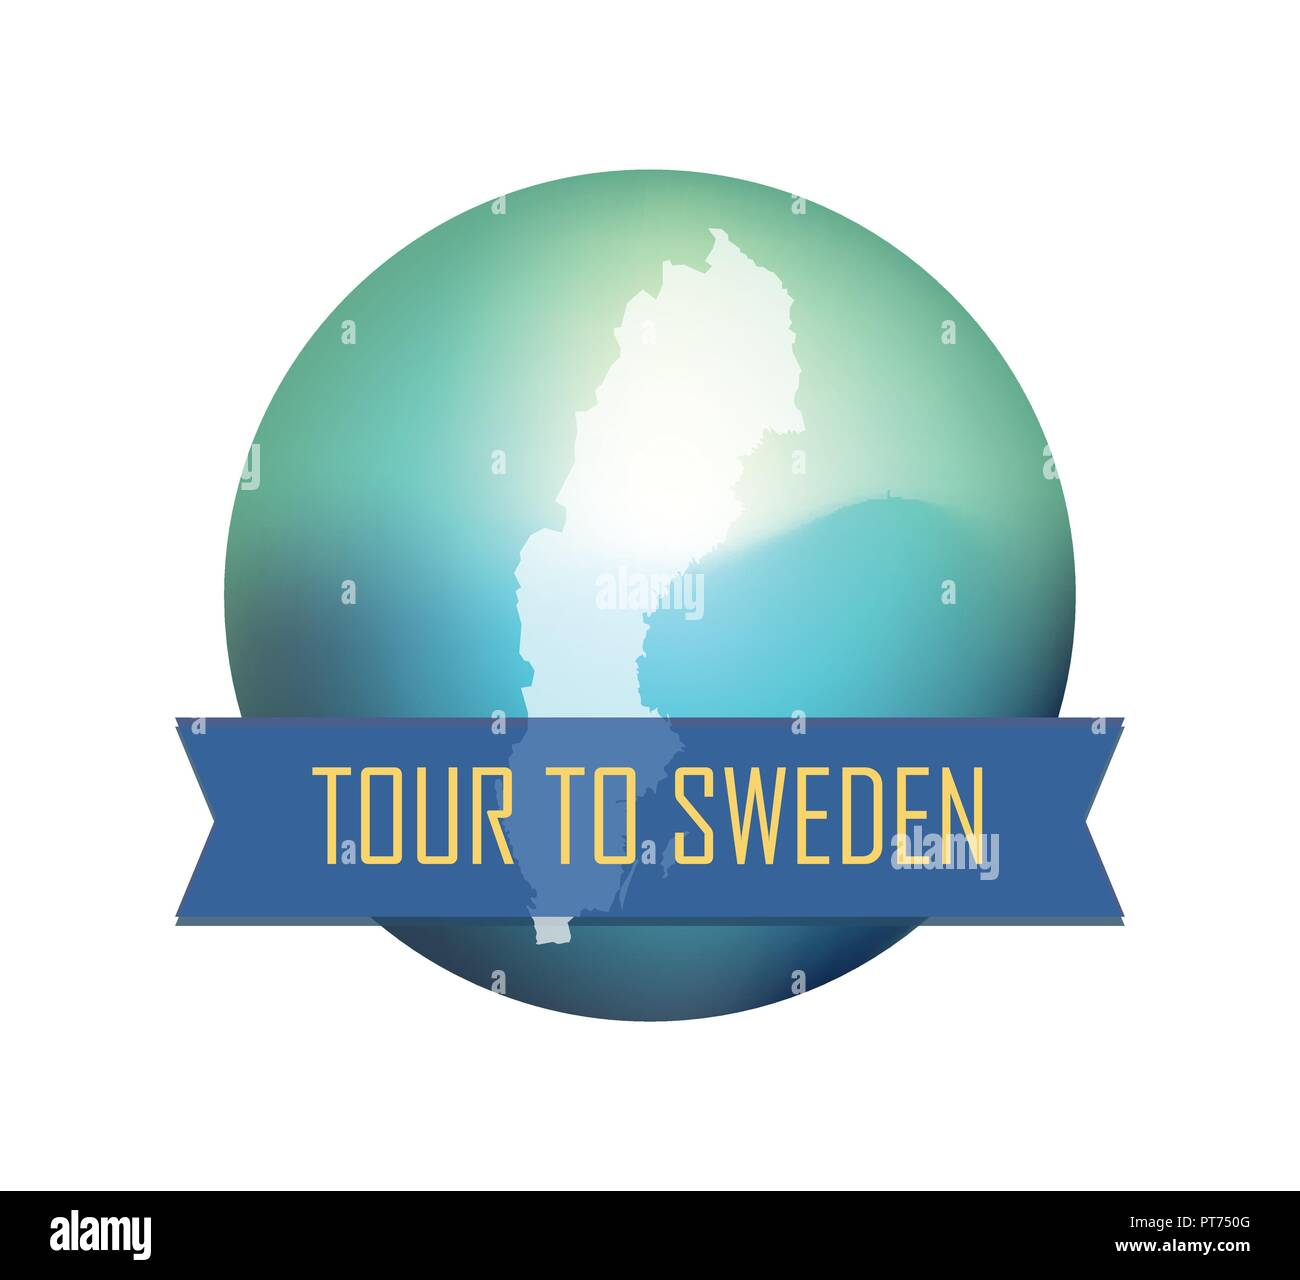 Tour to Sweden - Stock Image